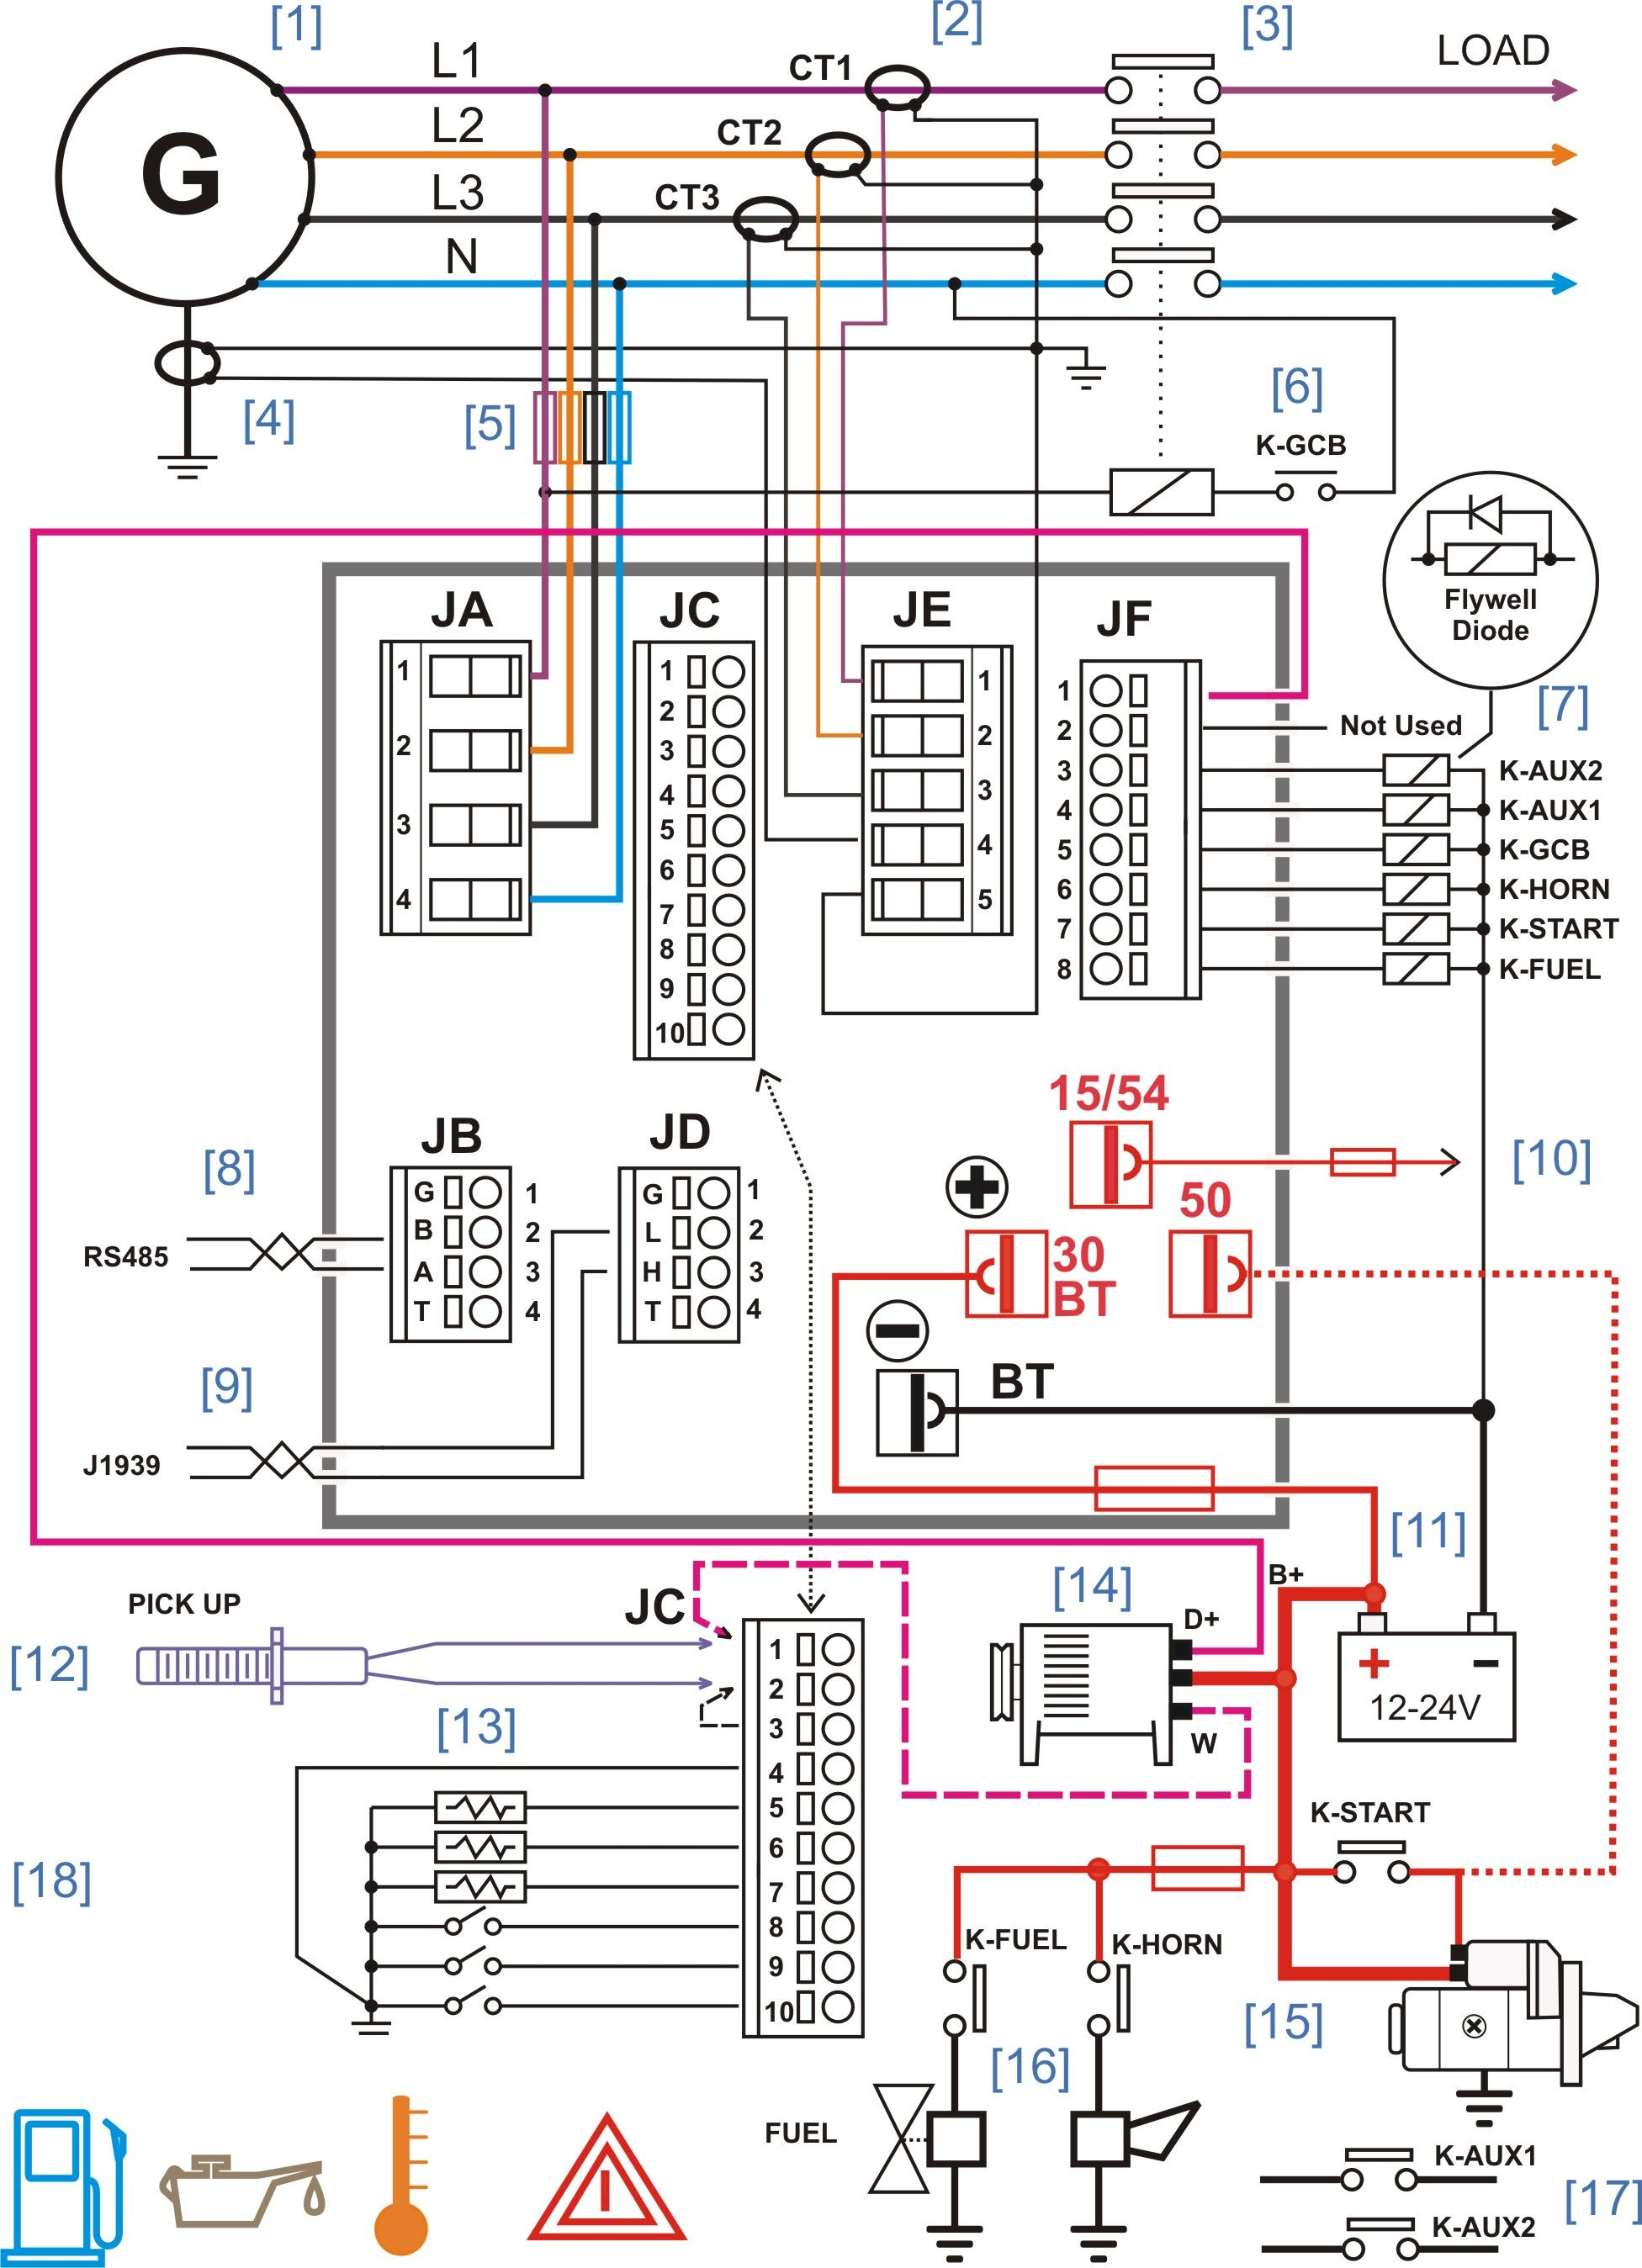 roadtrek inverter wiring diagram diesel generator control panel wiring diagram | diesel ... #8